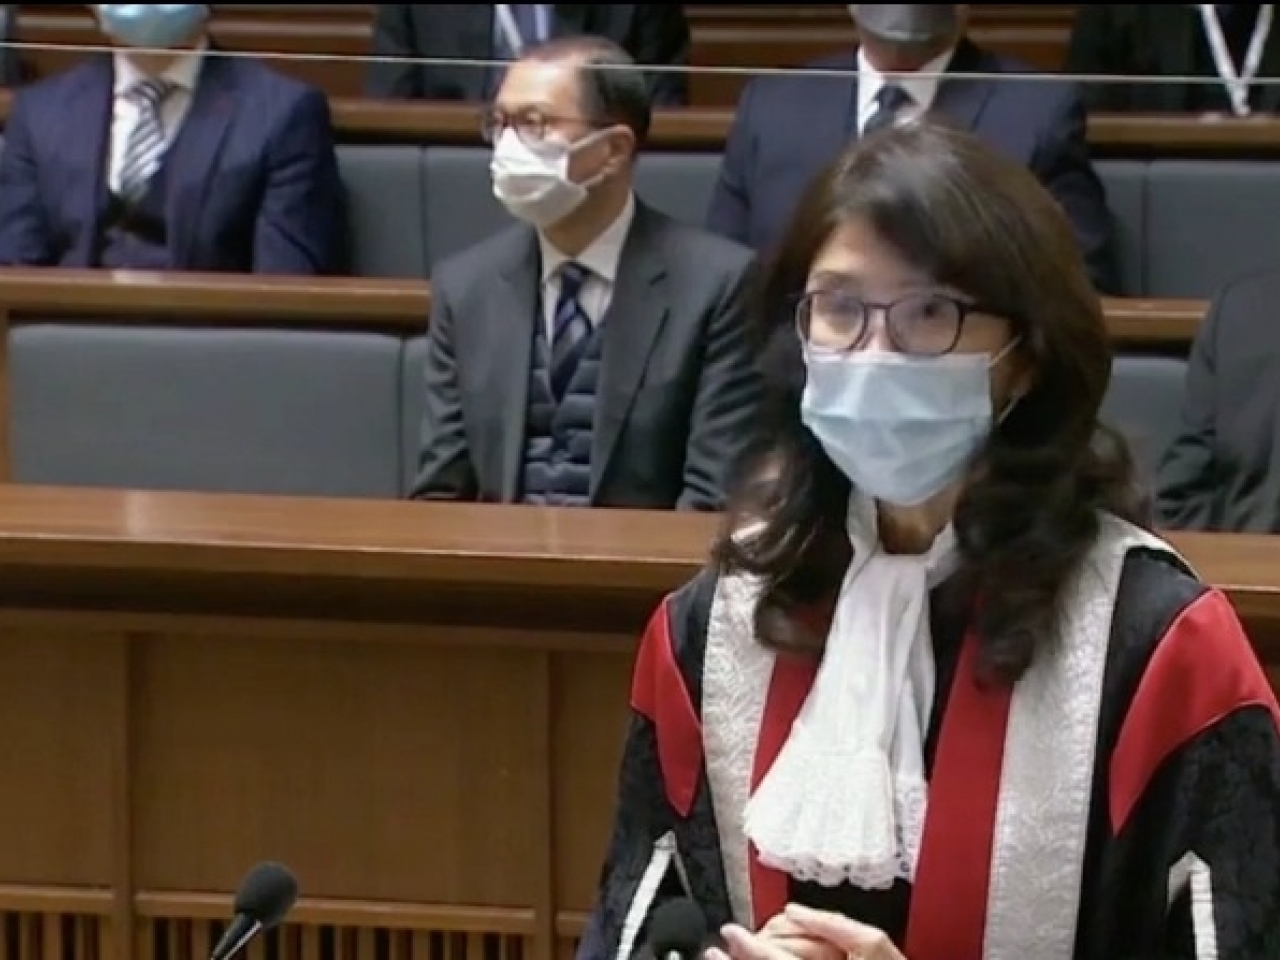 Rules Society head questions HK's steal of rule of regulation